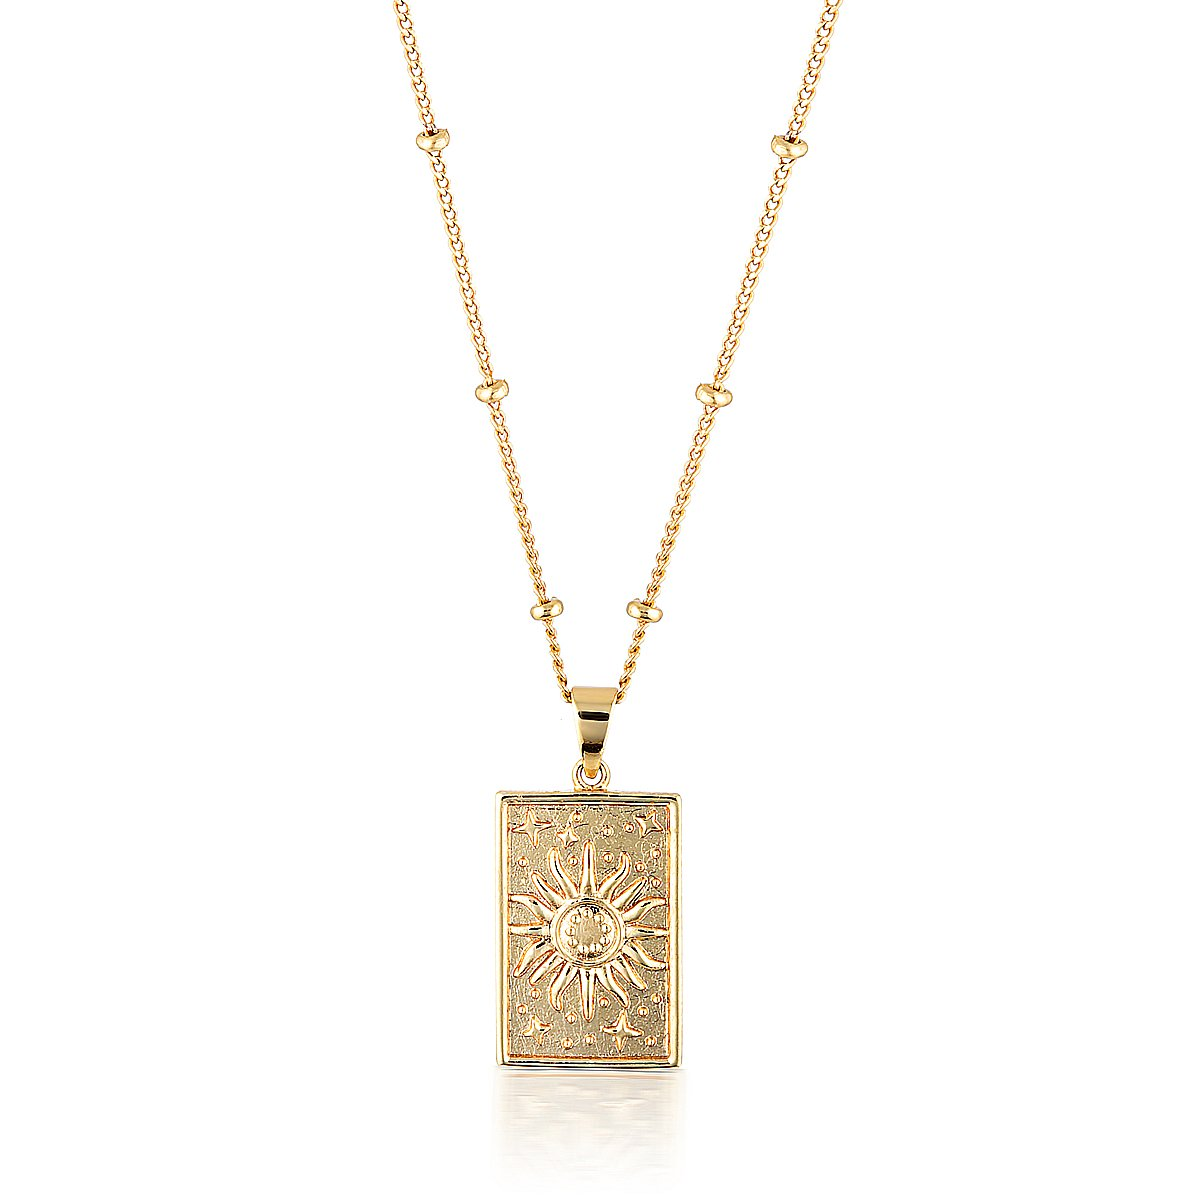 RADIANCE NECKLACE | GOLD (4740826398786)